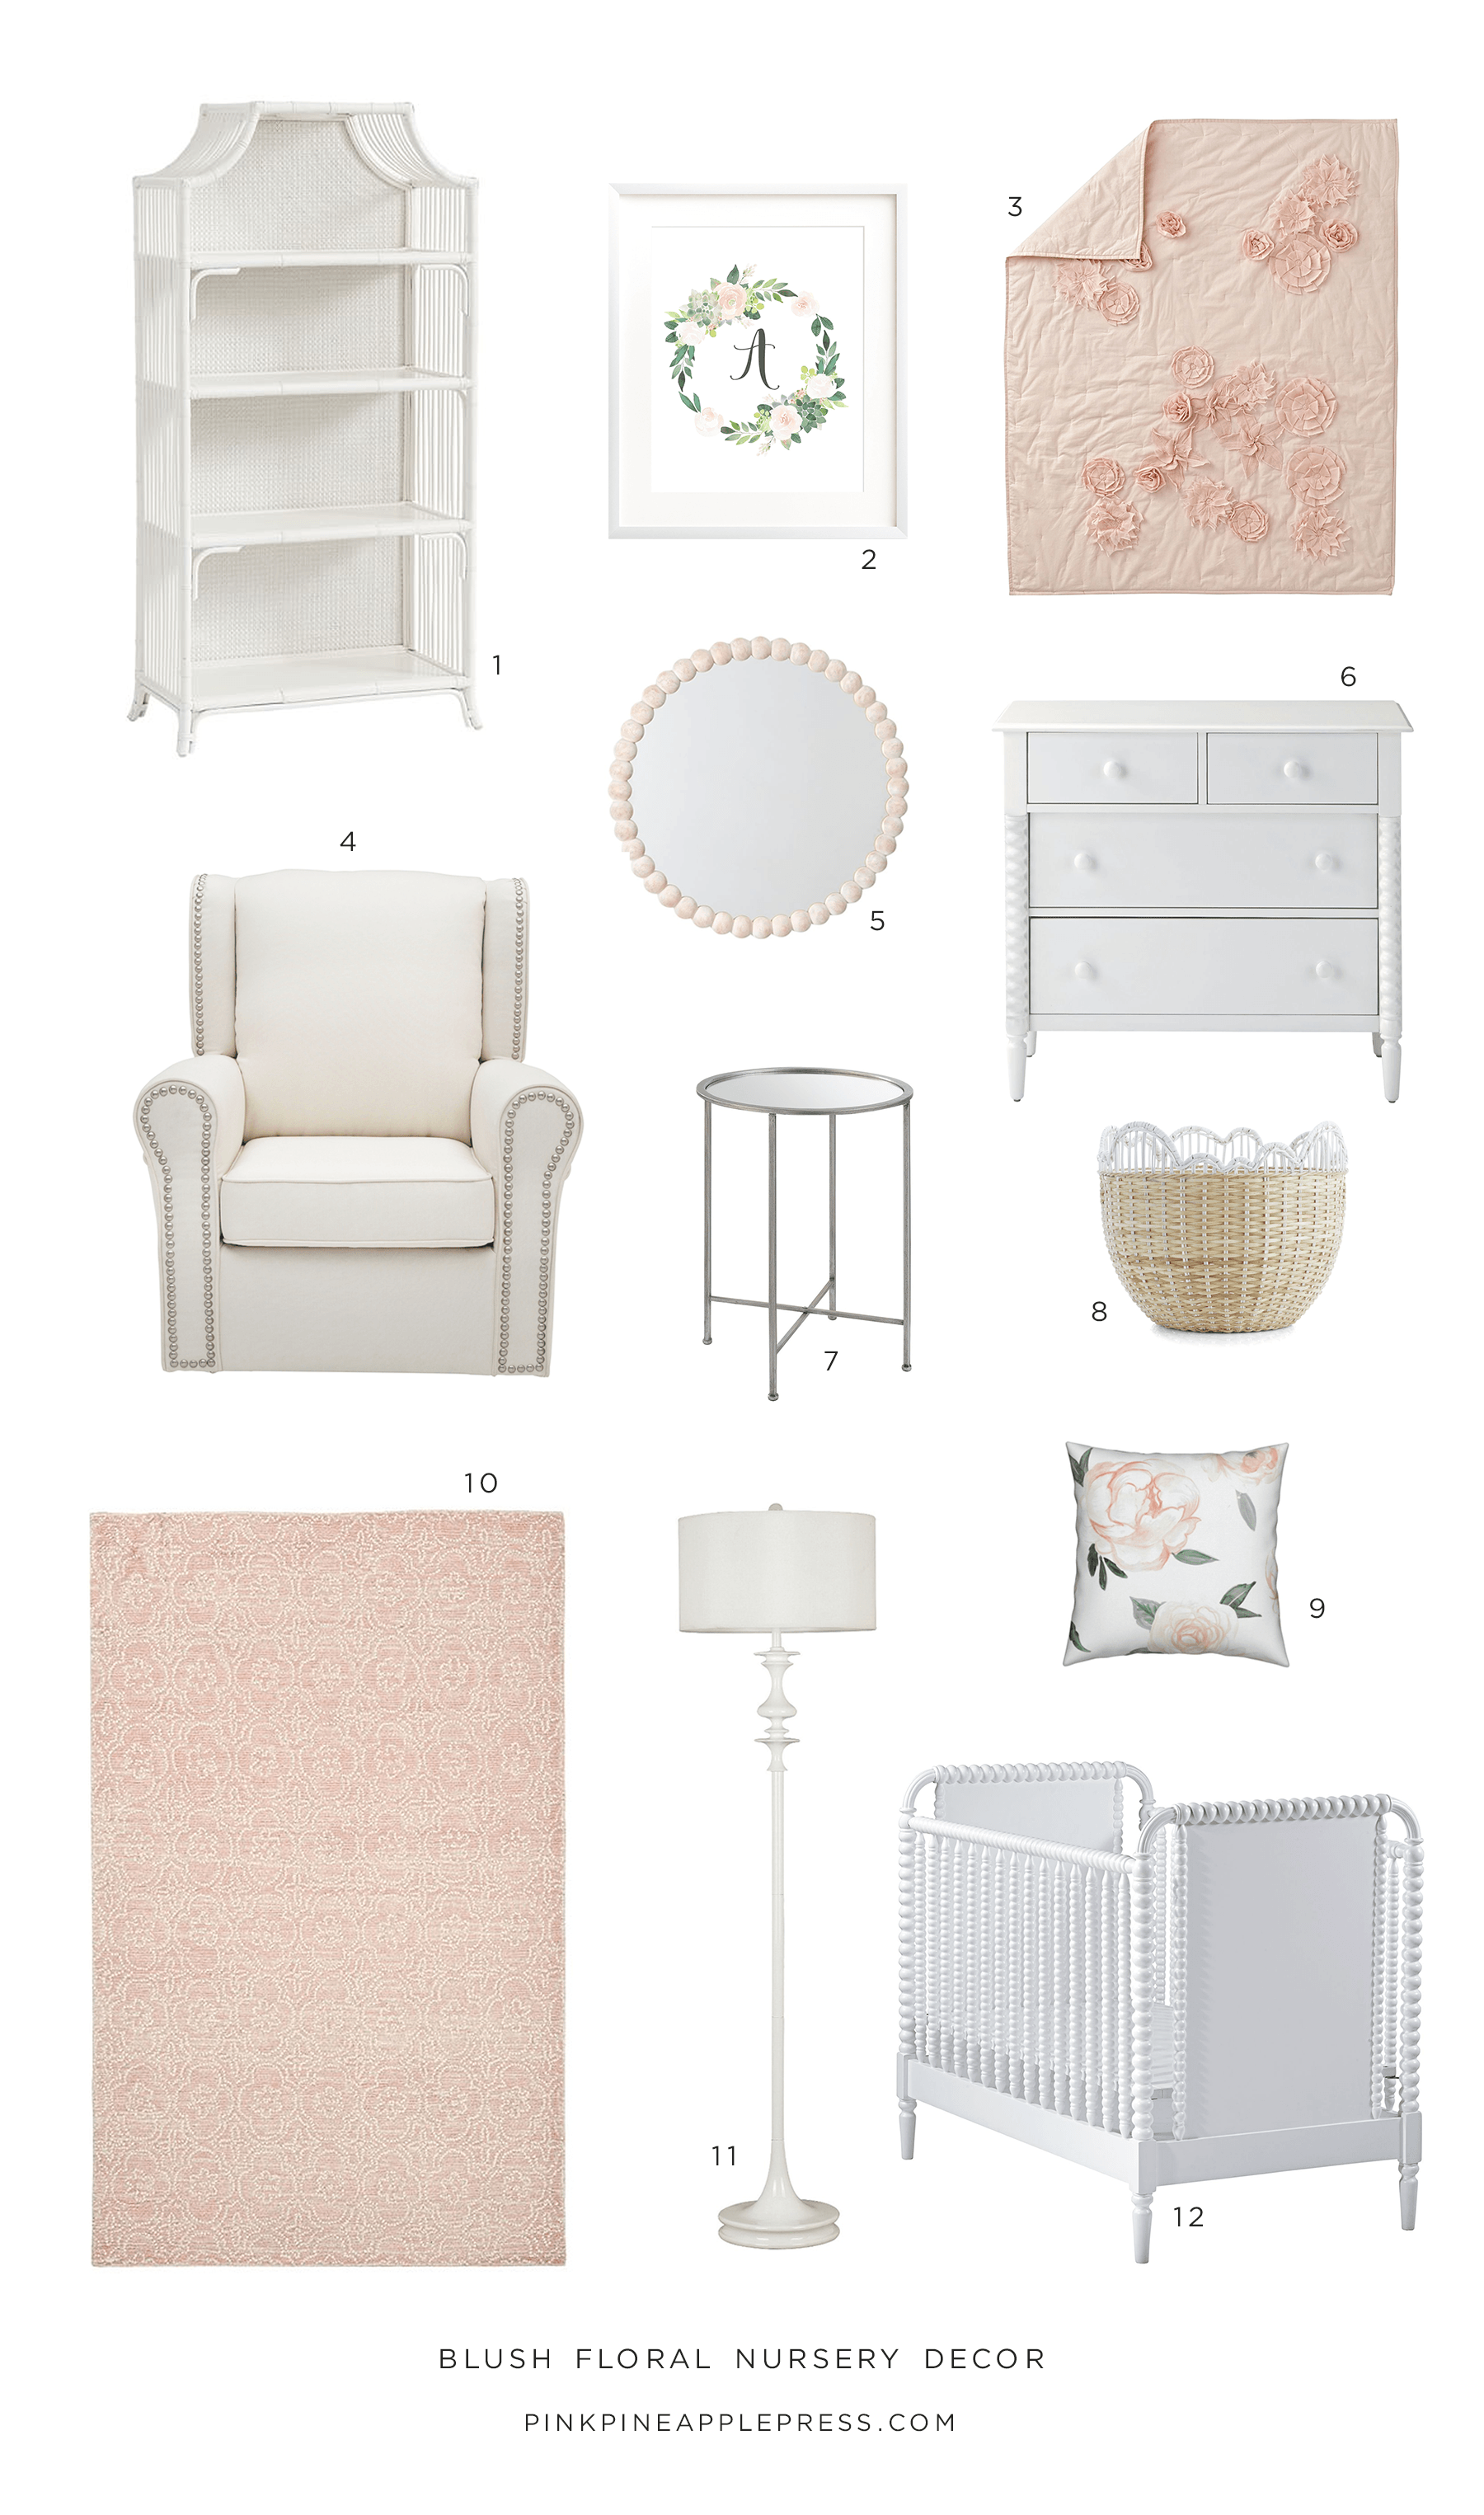 Blush Floral Nursery Decor Ideas